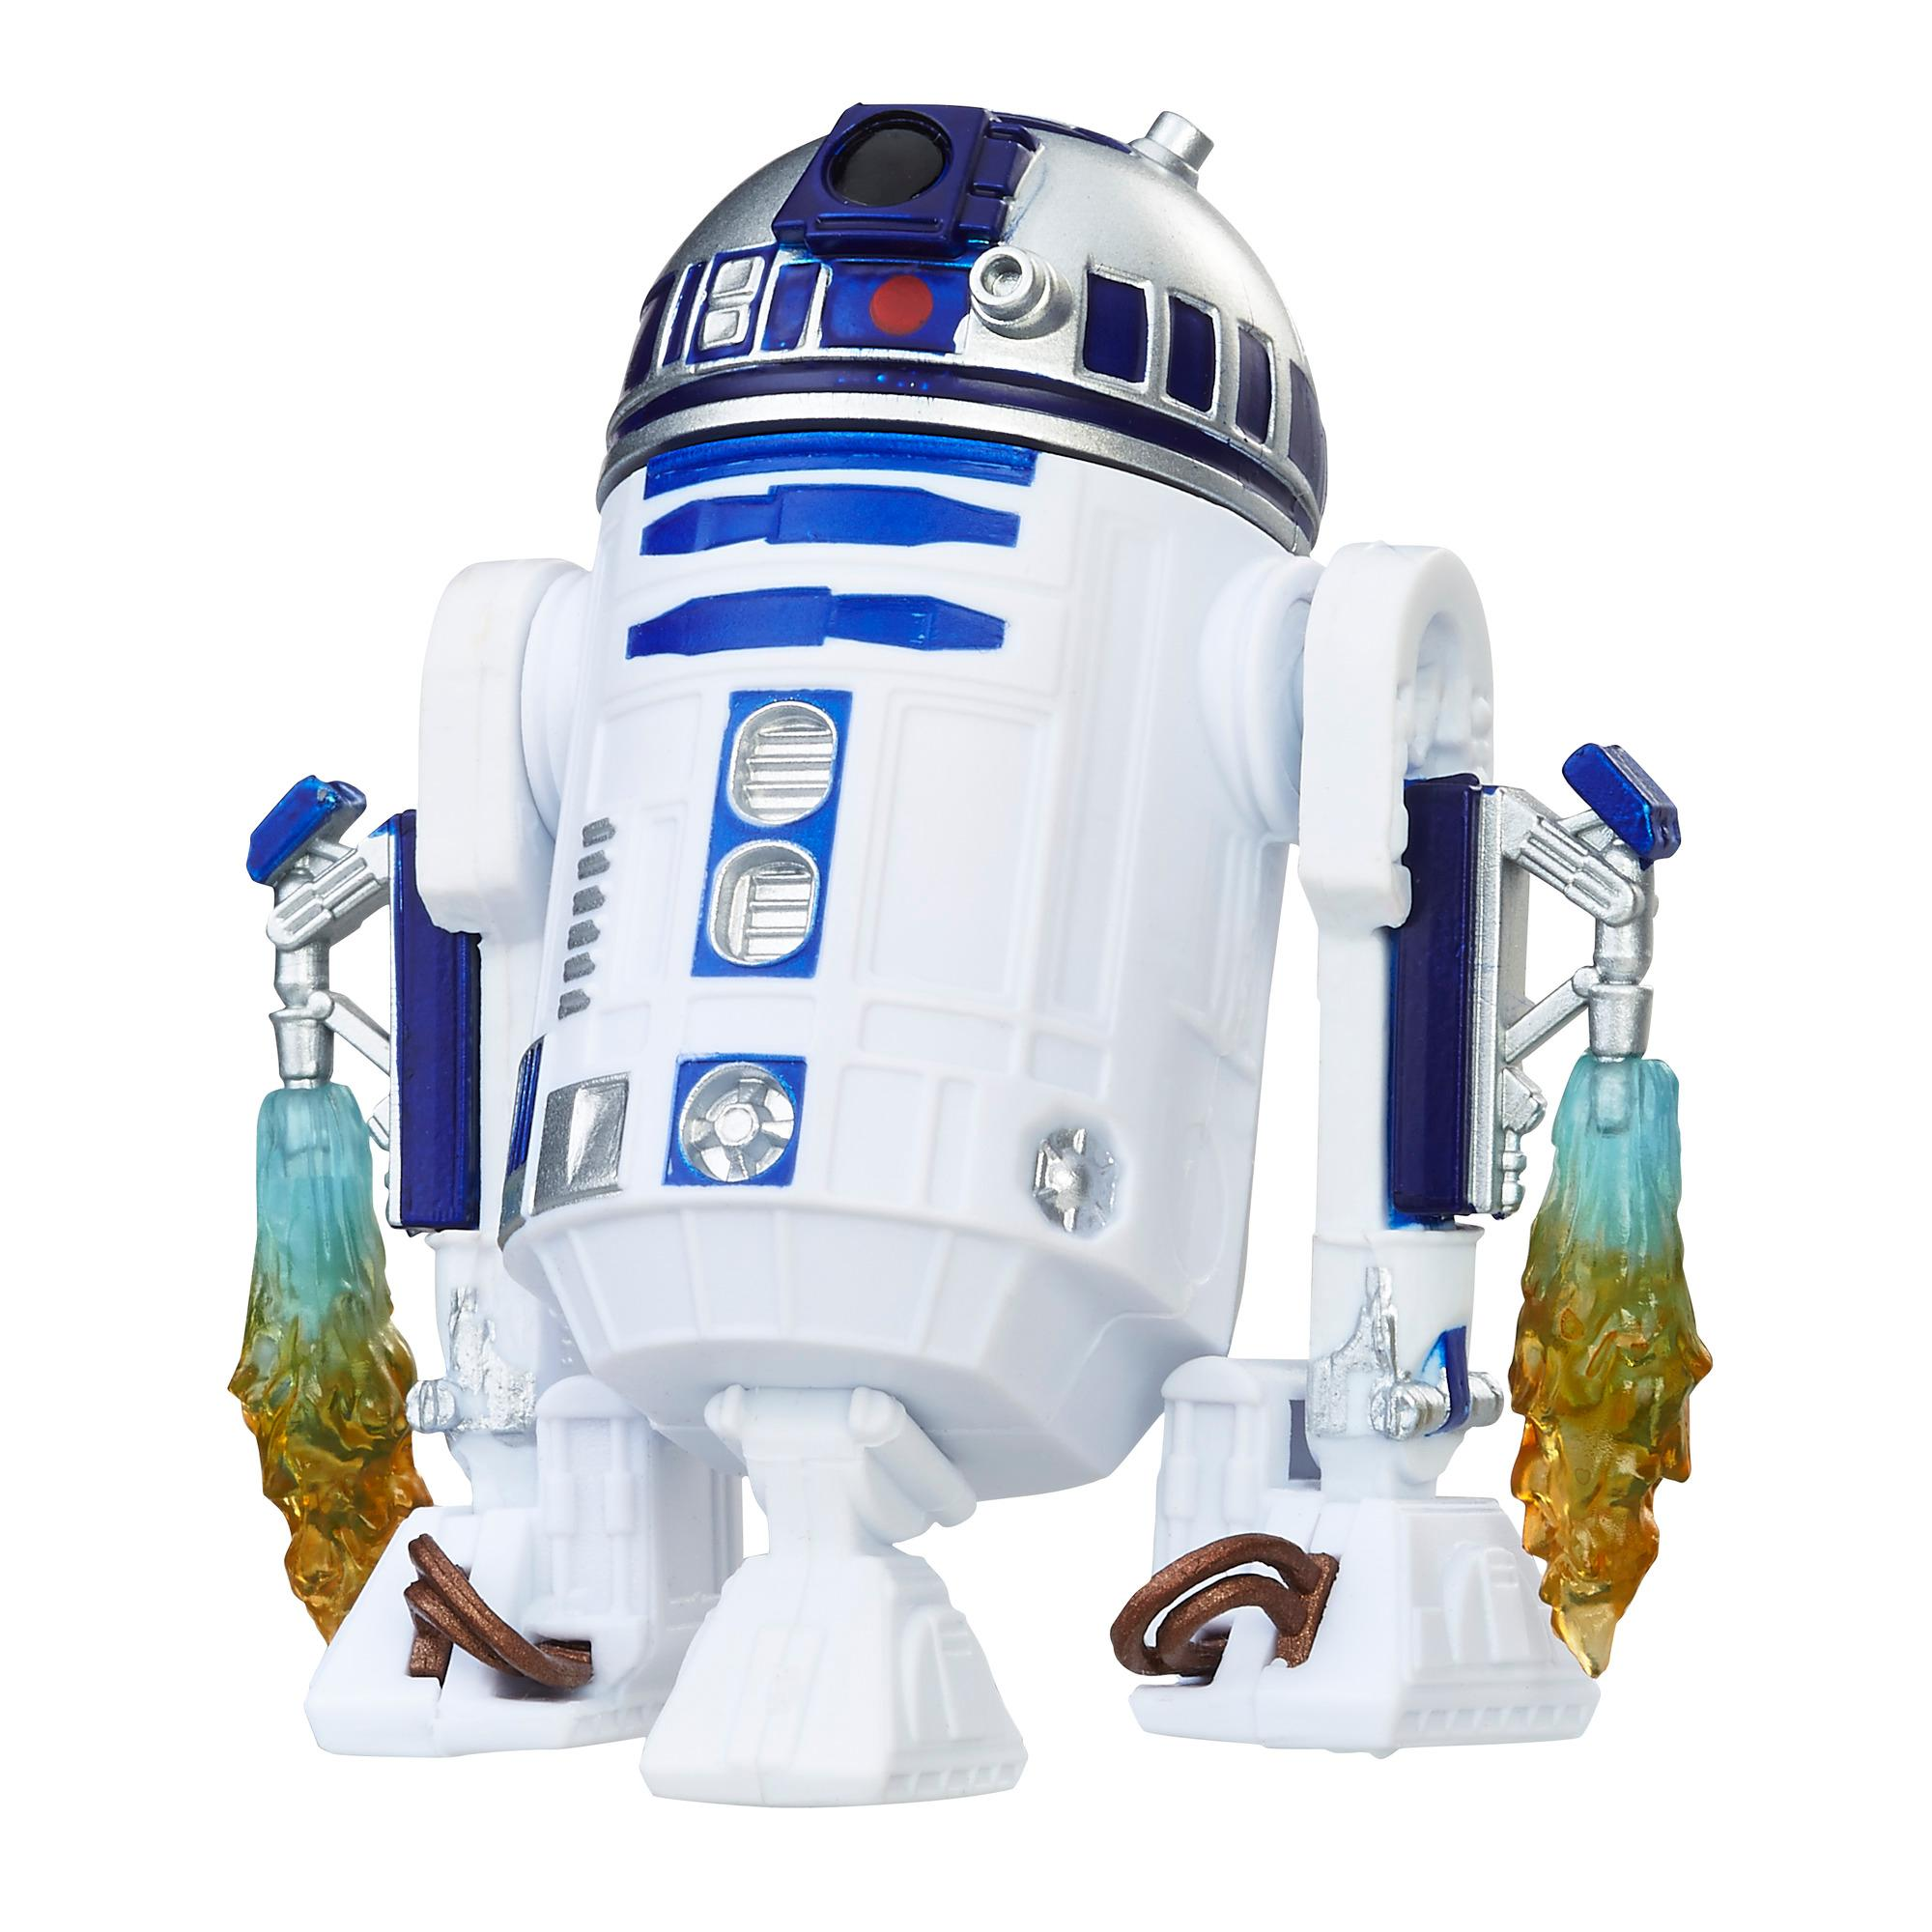 Star Wars - Figurine R2-D2 avec Force Link